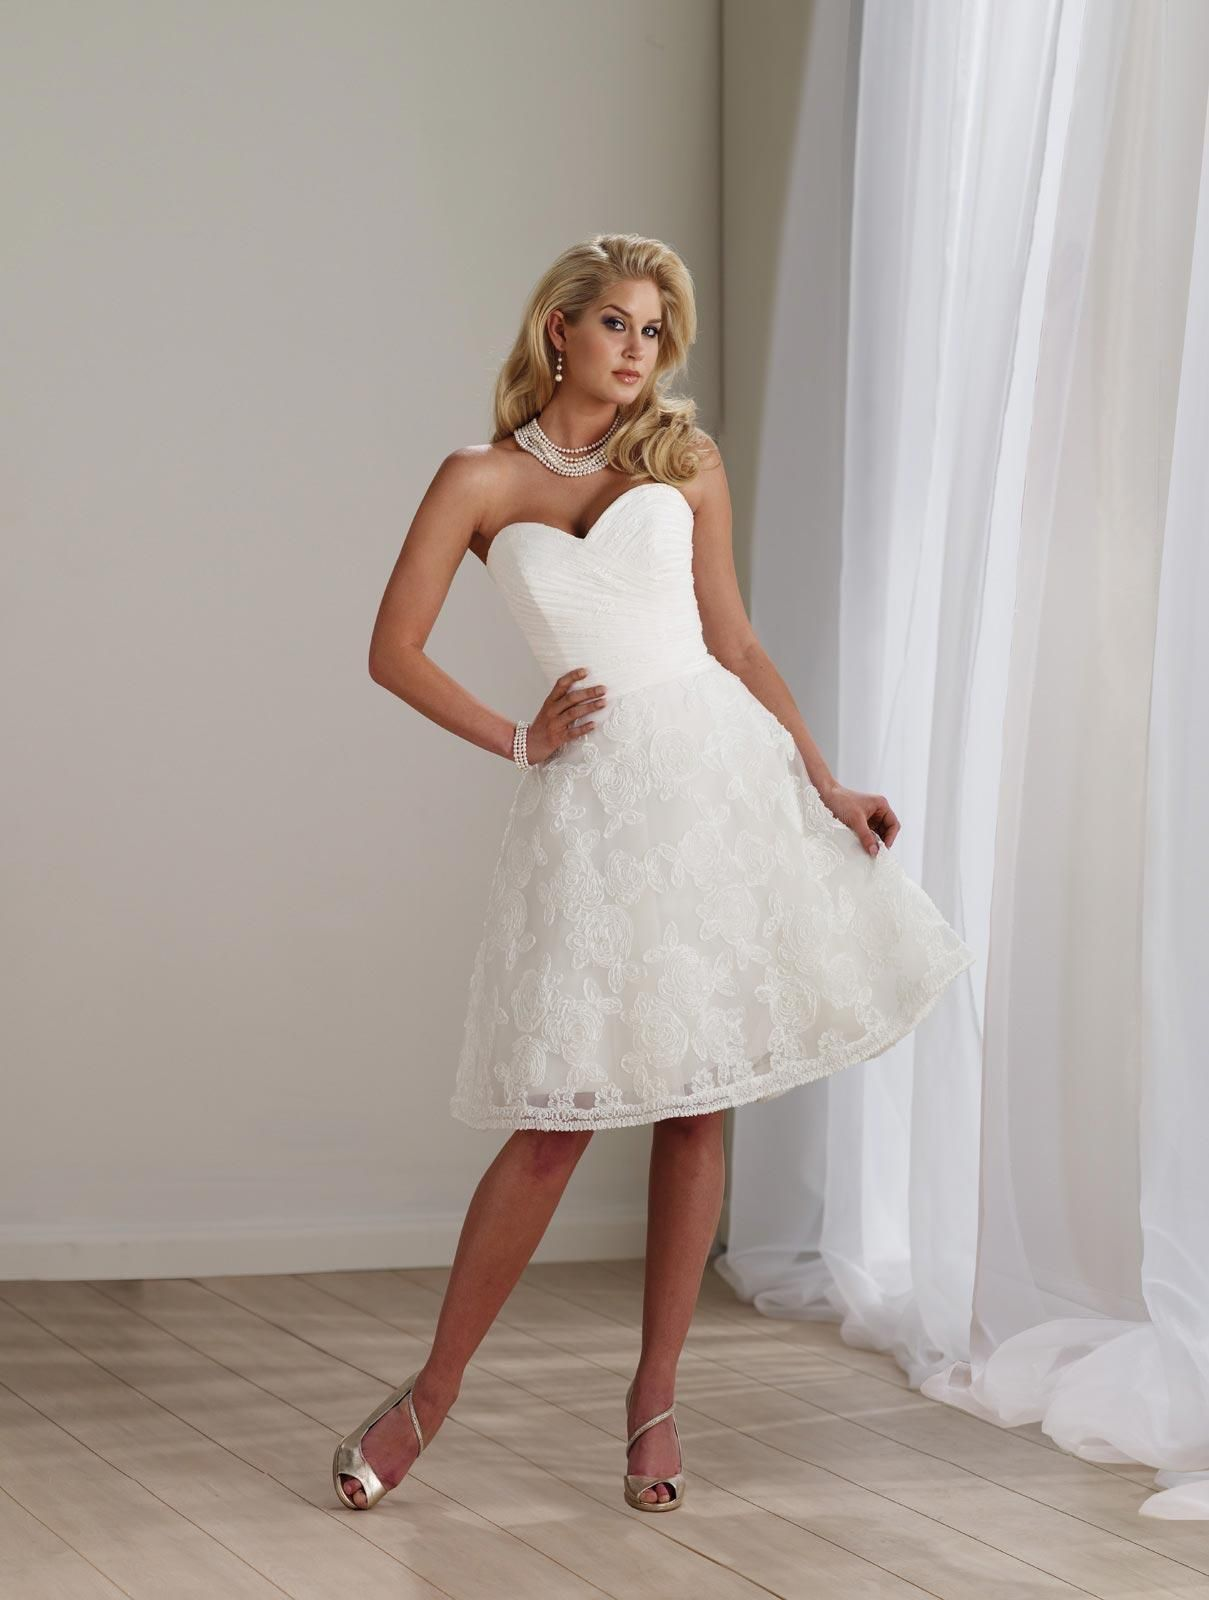 Pretty dresses for wedding reception  short sweetheart neckline wedding dresses  Google Search